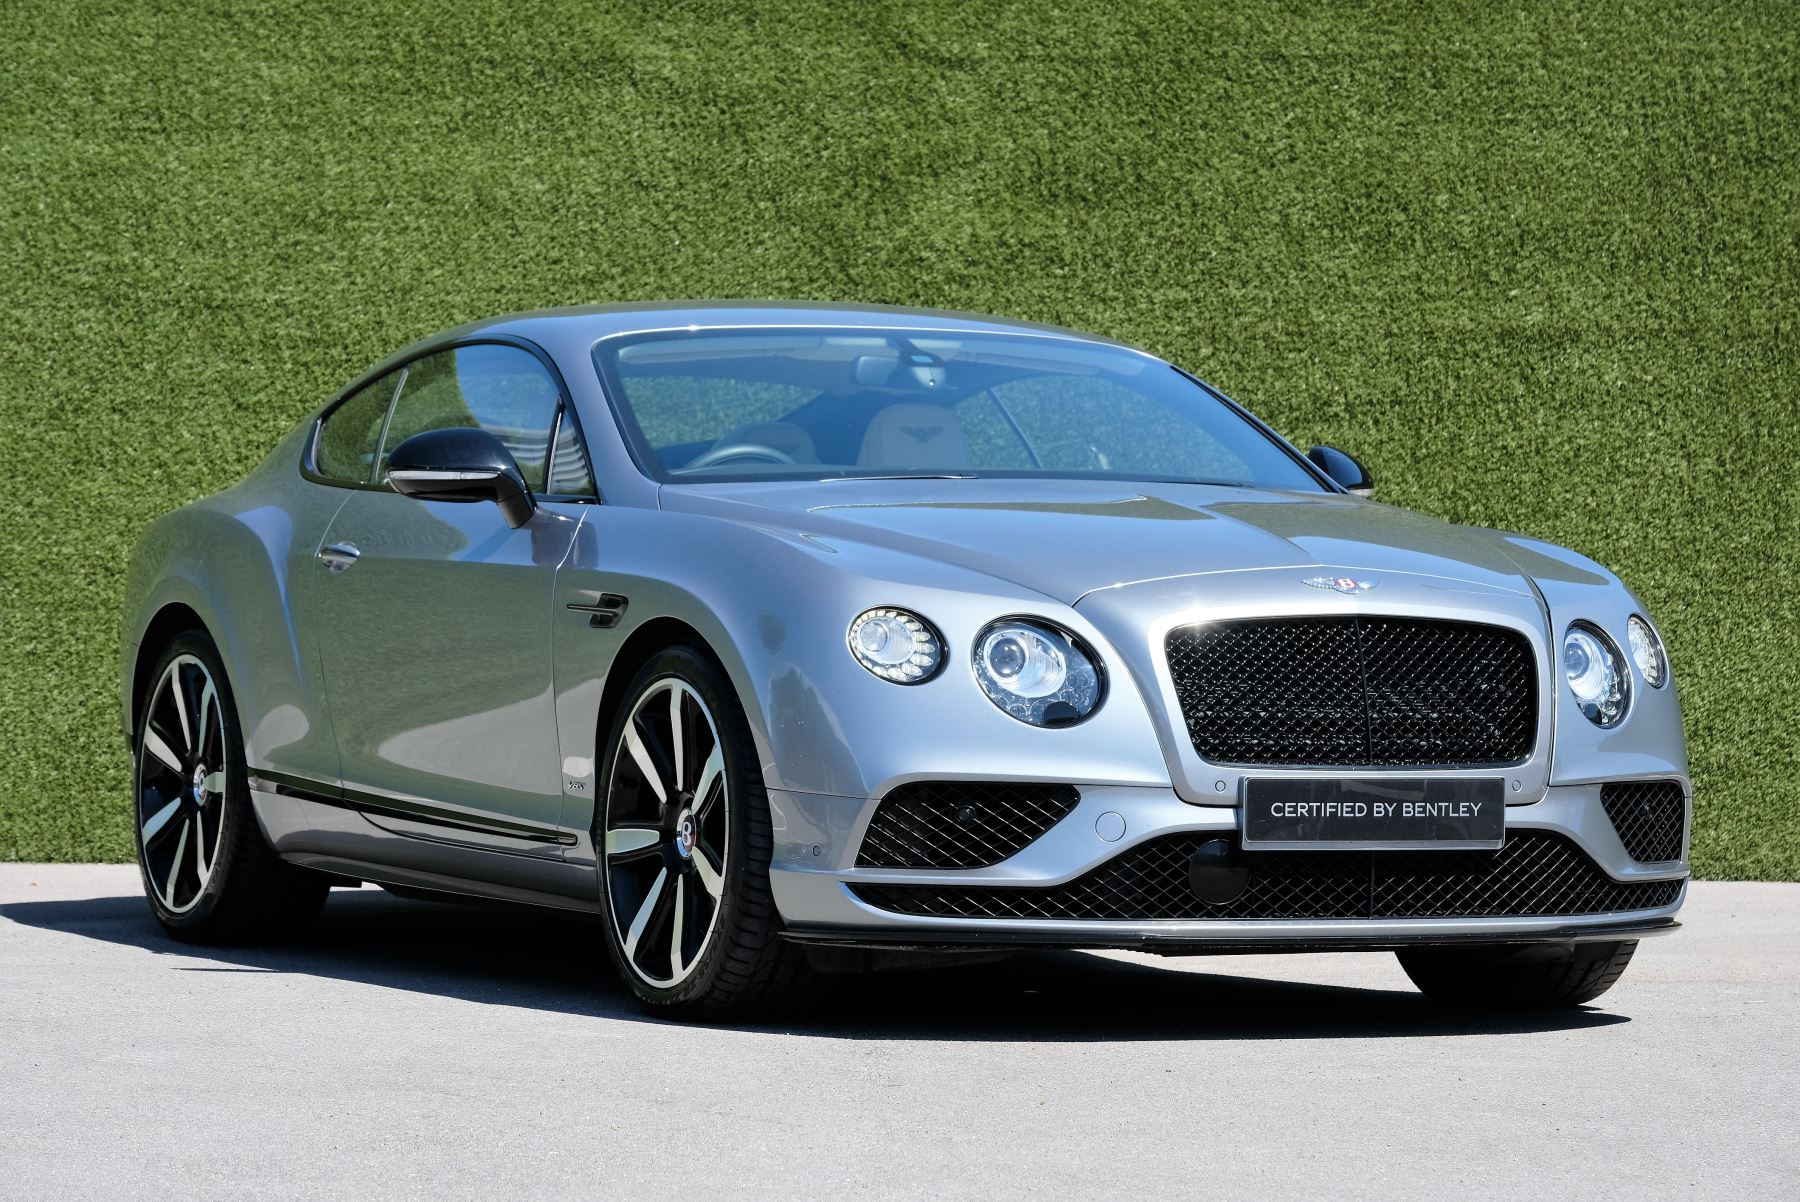 Bentley Continental GT V8 S Coupe 4.0 Mulliner Driving Specification 2dr image 1